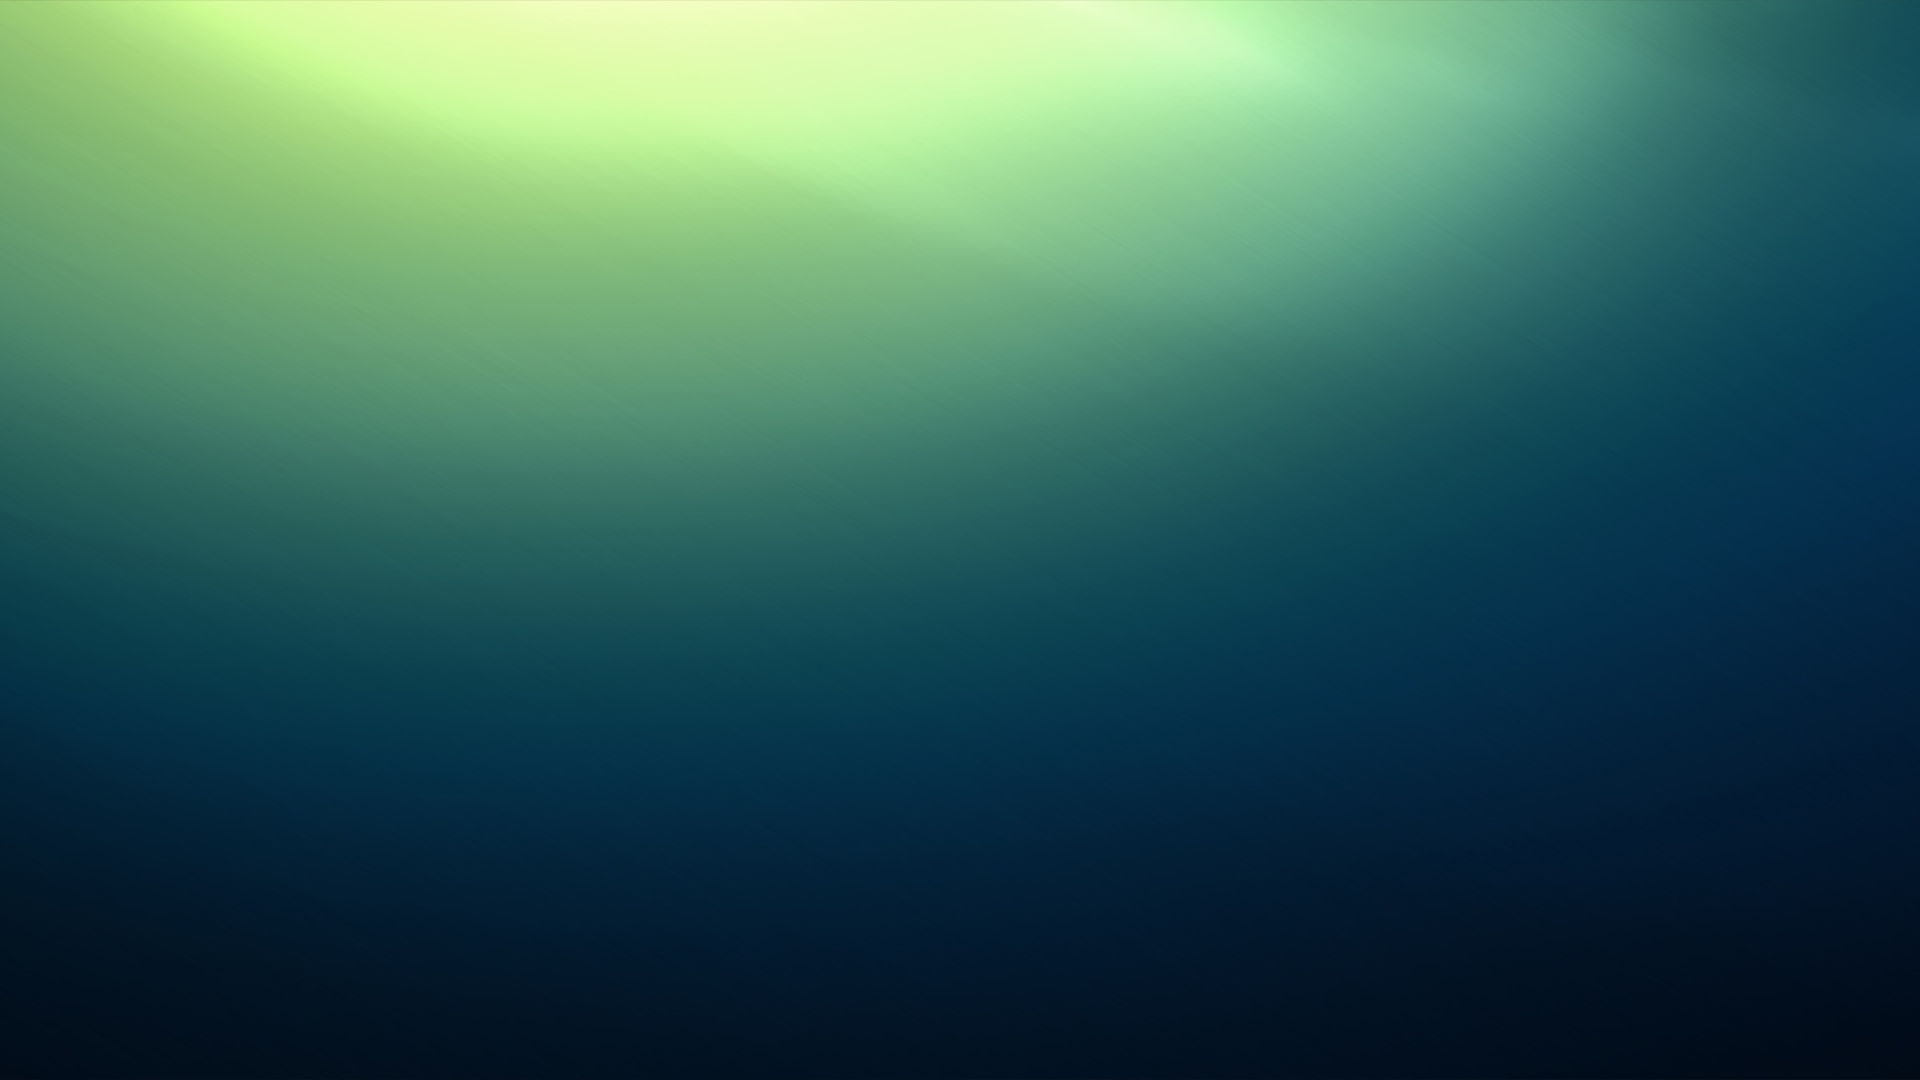 Green Gradient Wallpapers Top Free Green Gradient